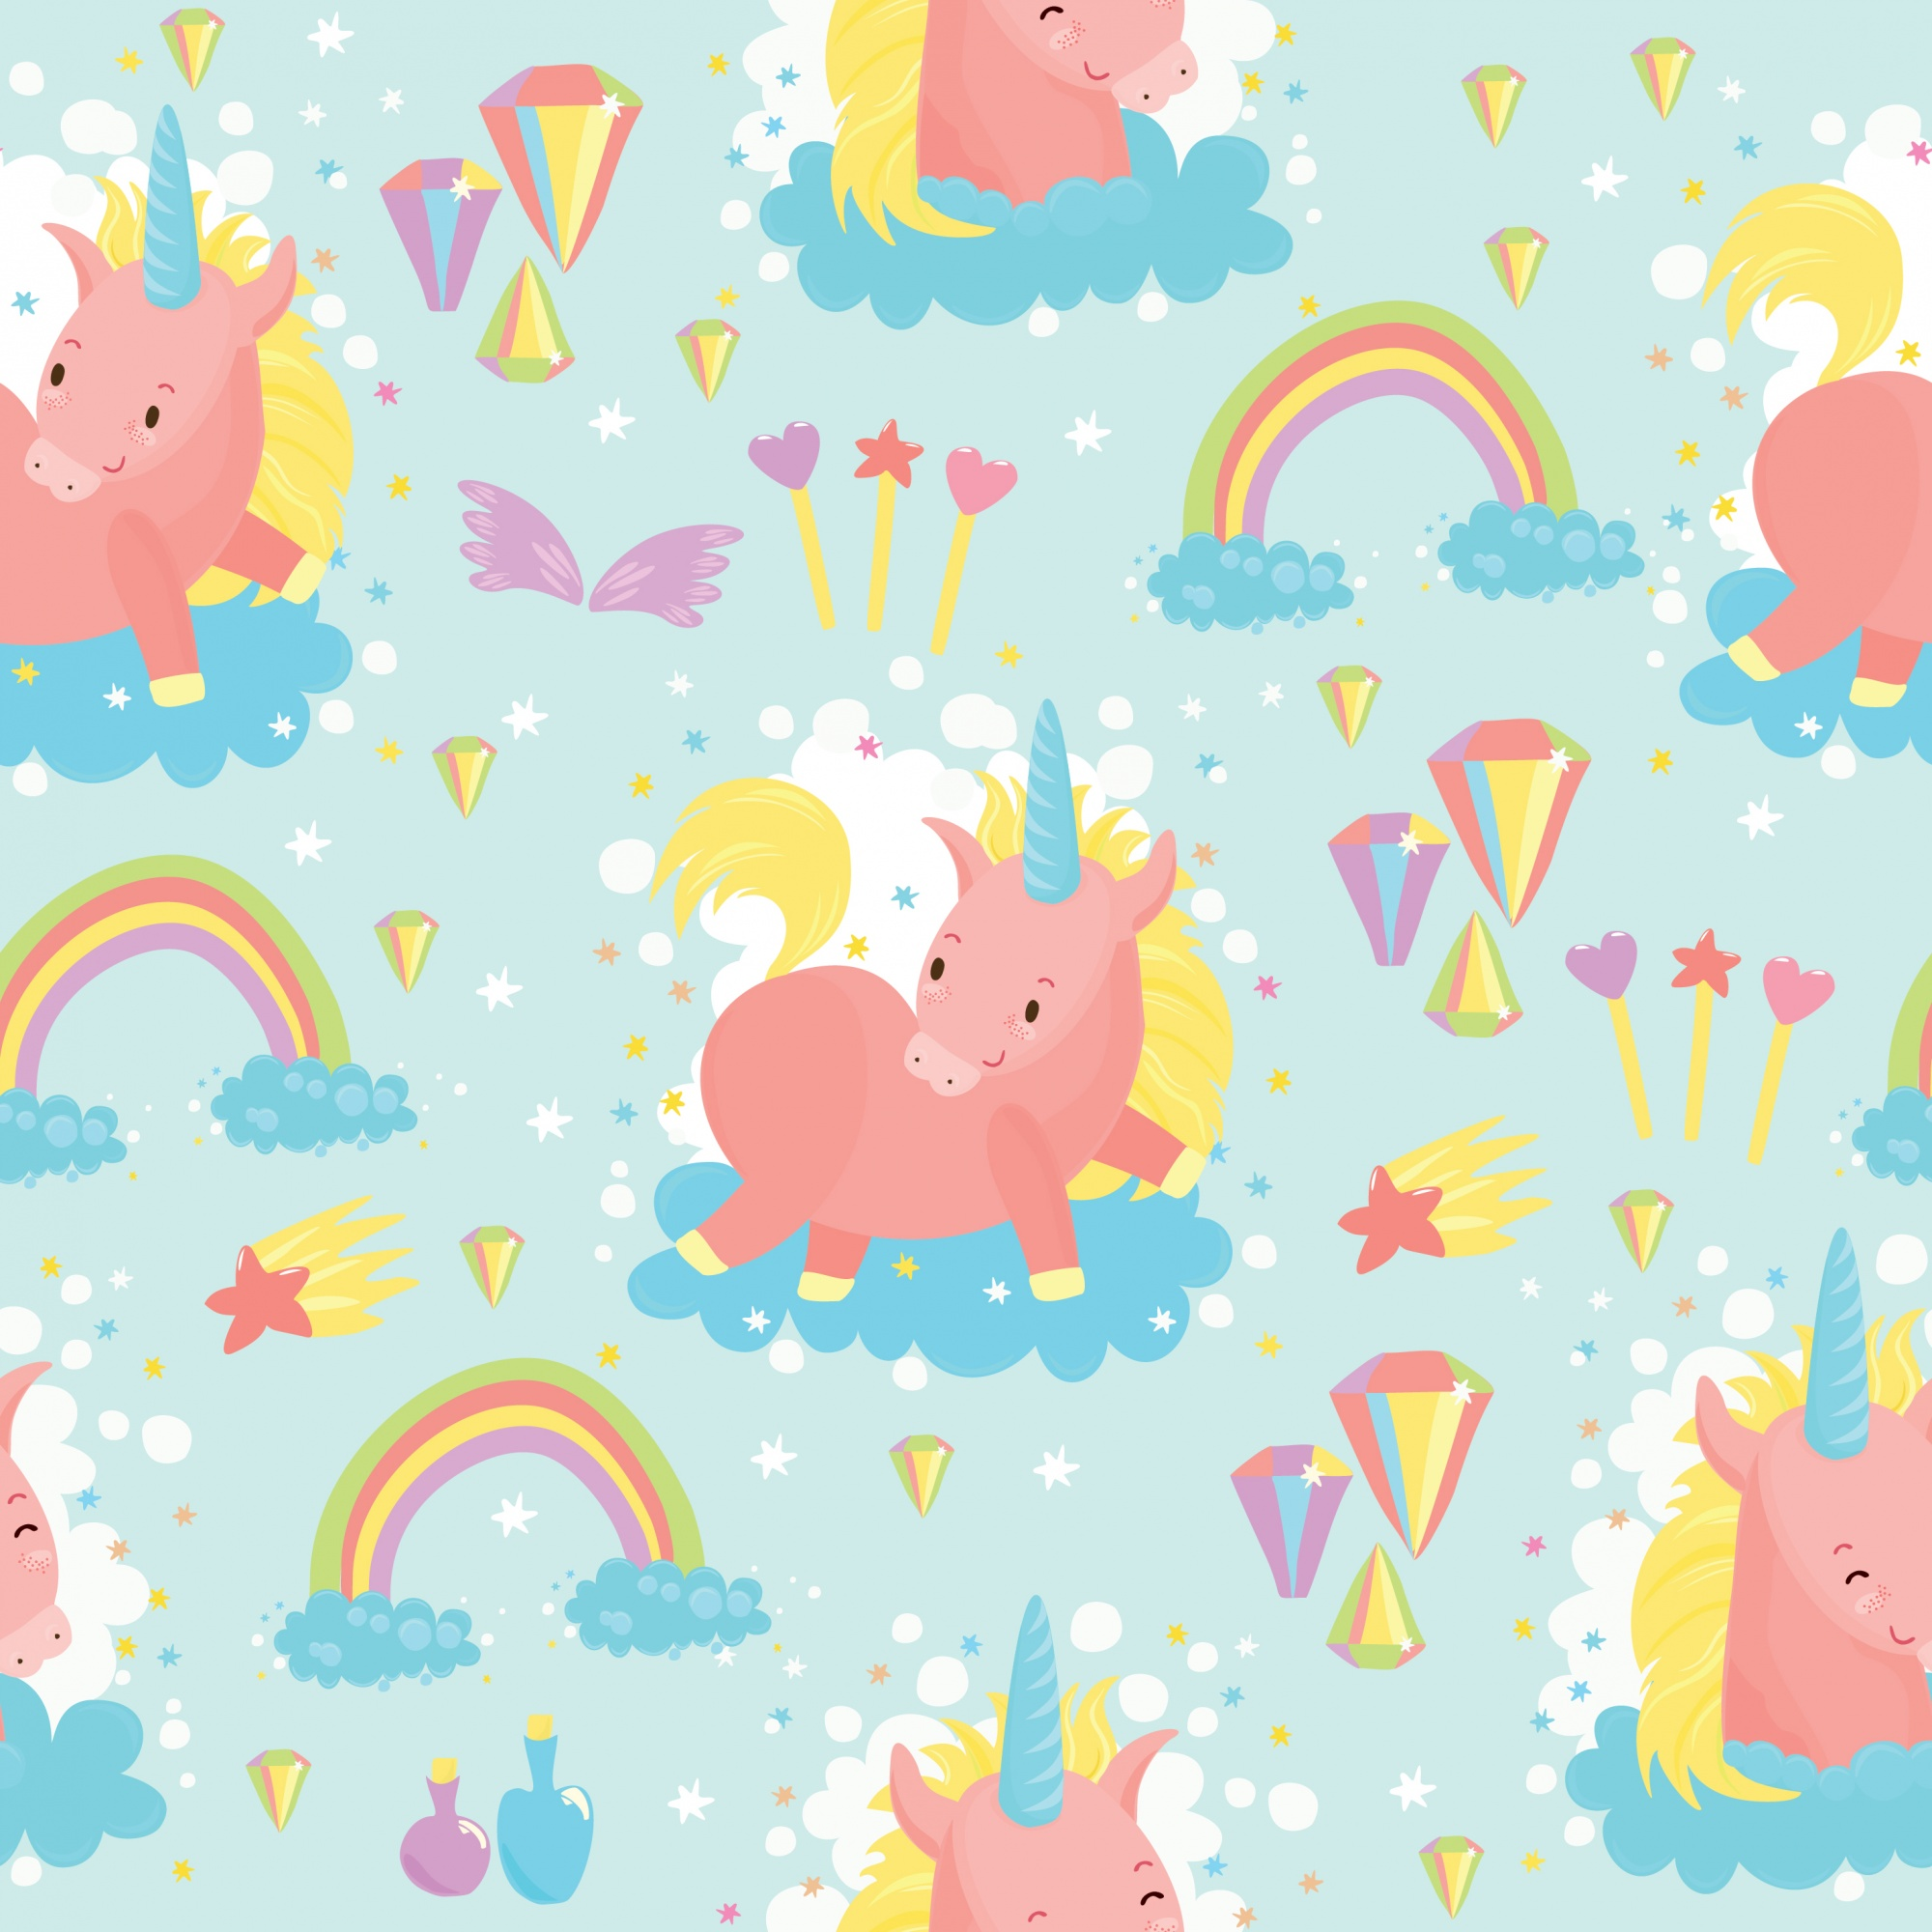 Unicorn and rainbow pattern